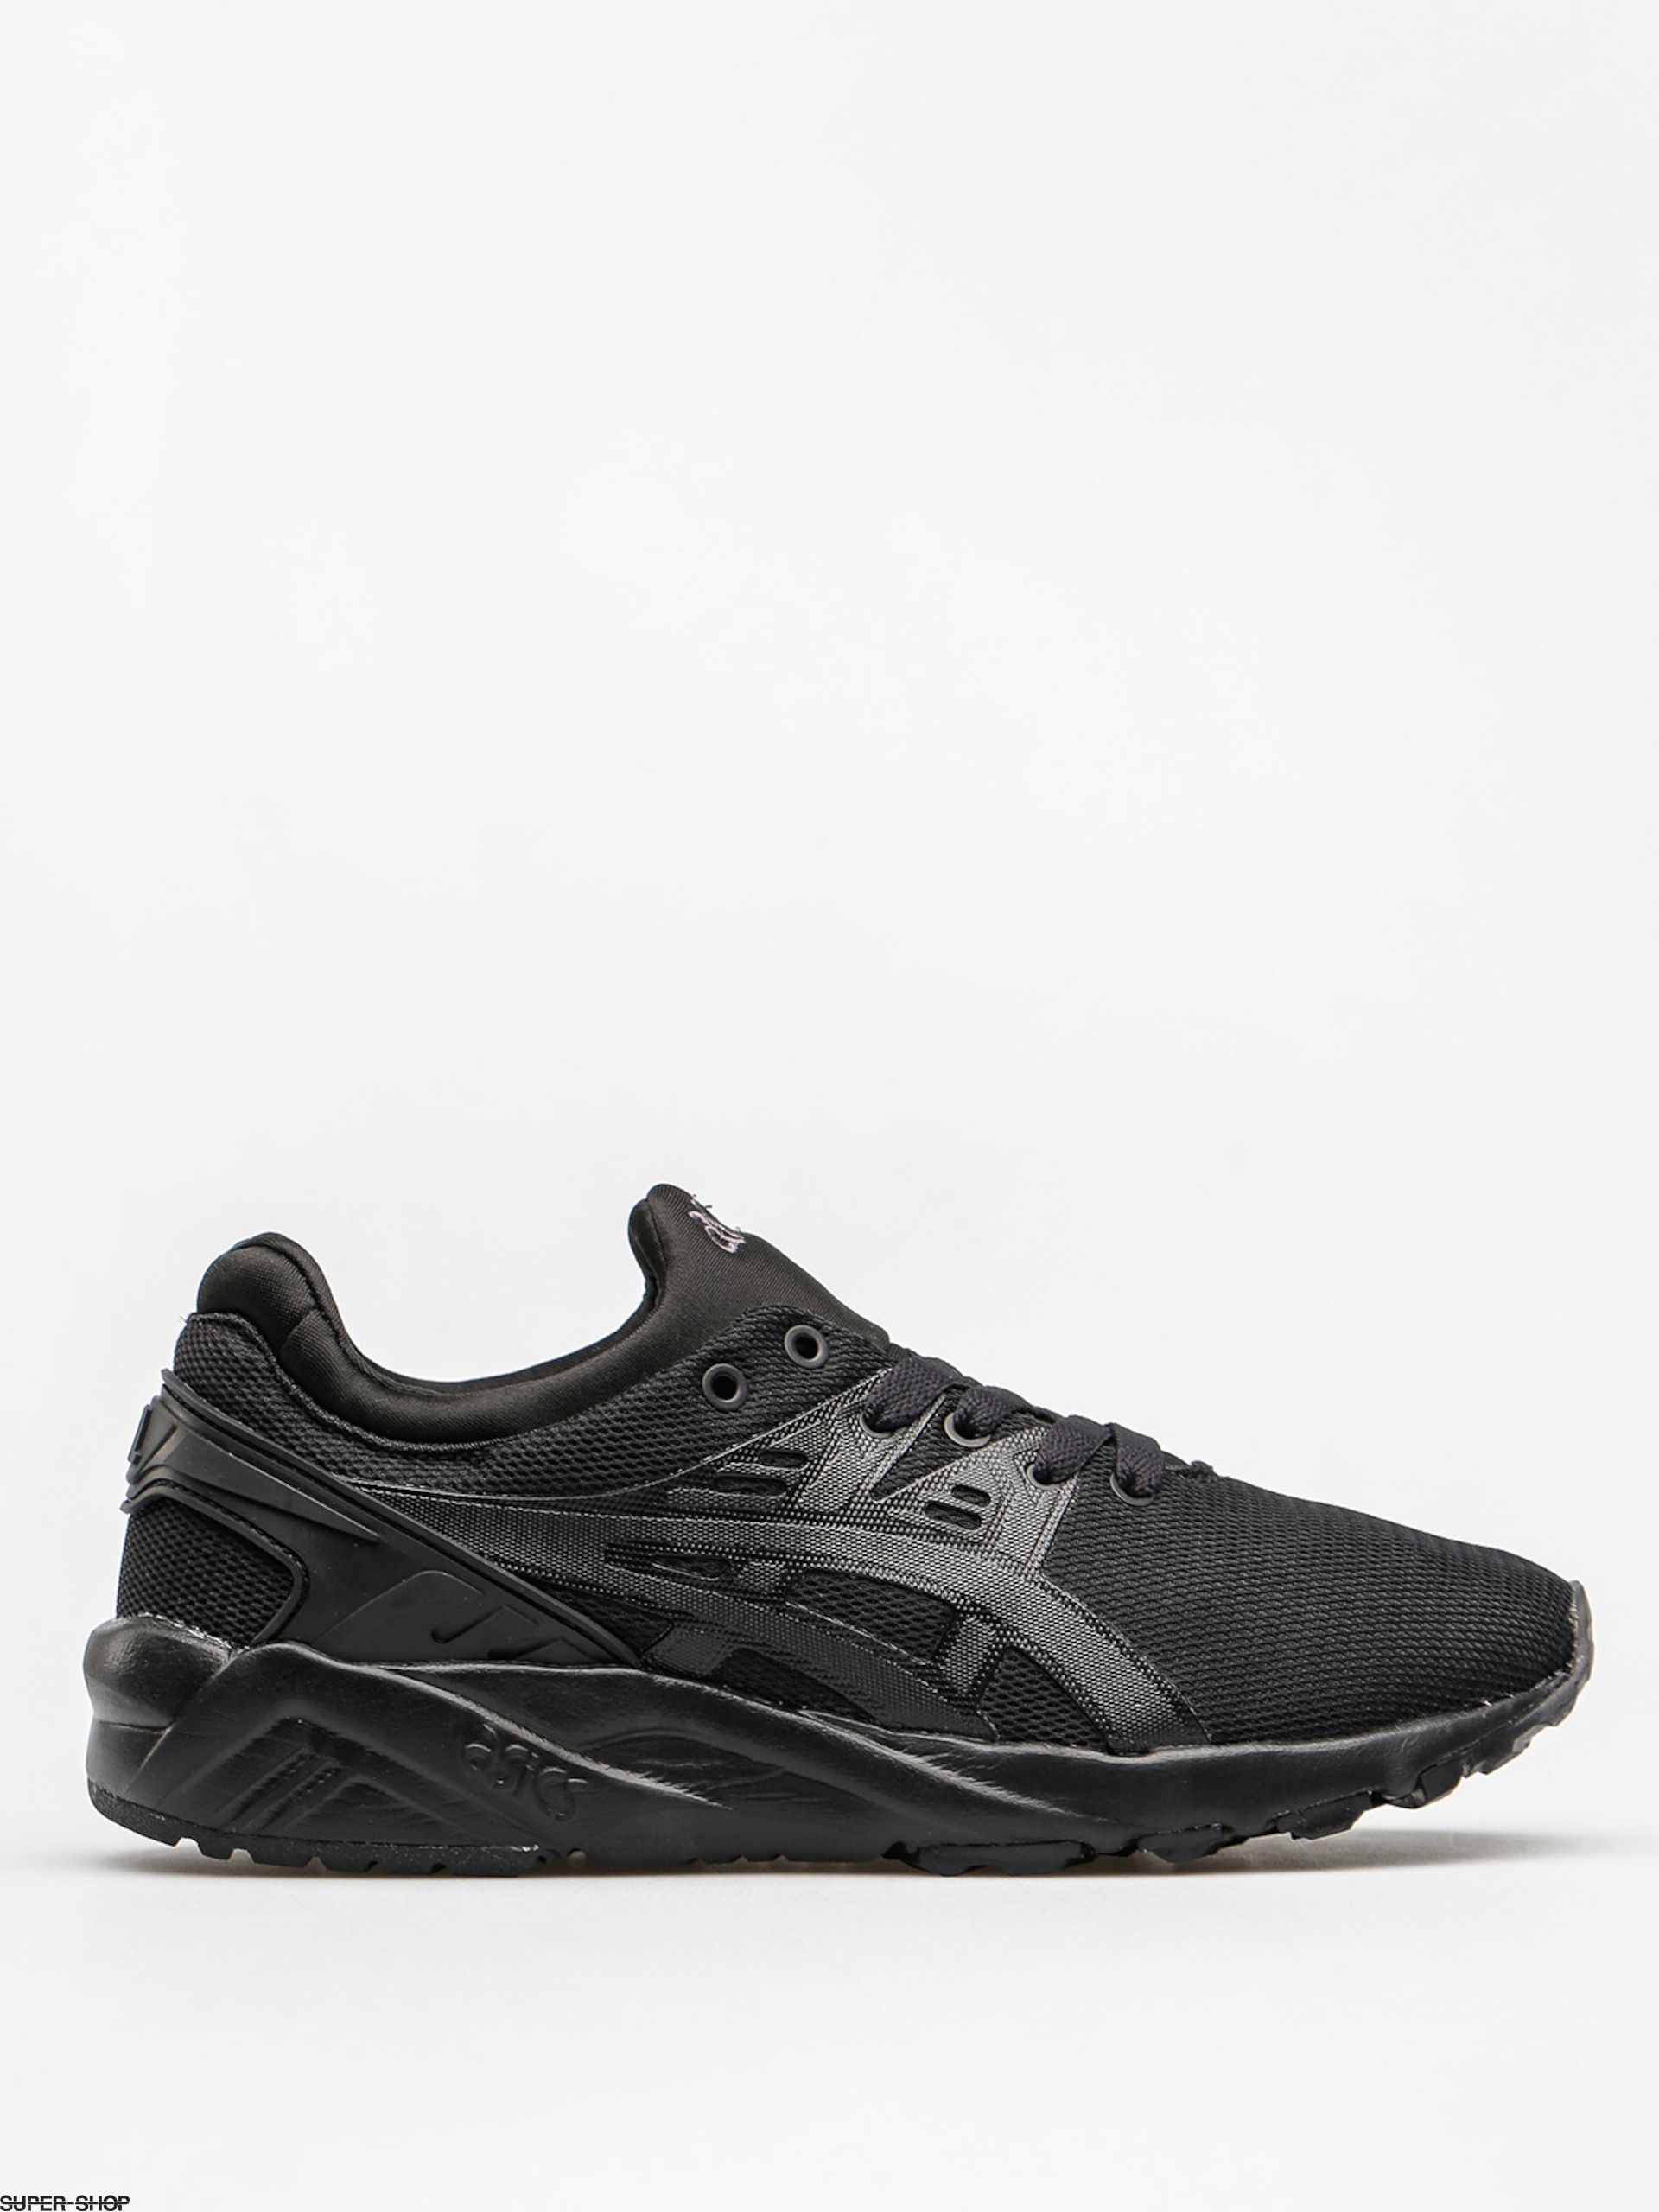 Lo siento Coordinar Cúal  ASICS Tiger Shoes Gel Kayano Trainer Evo Gs (black/black)